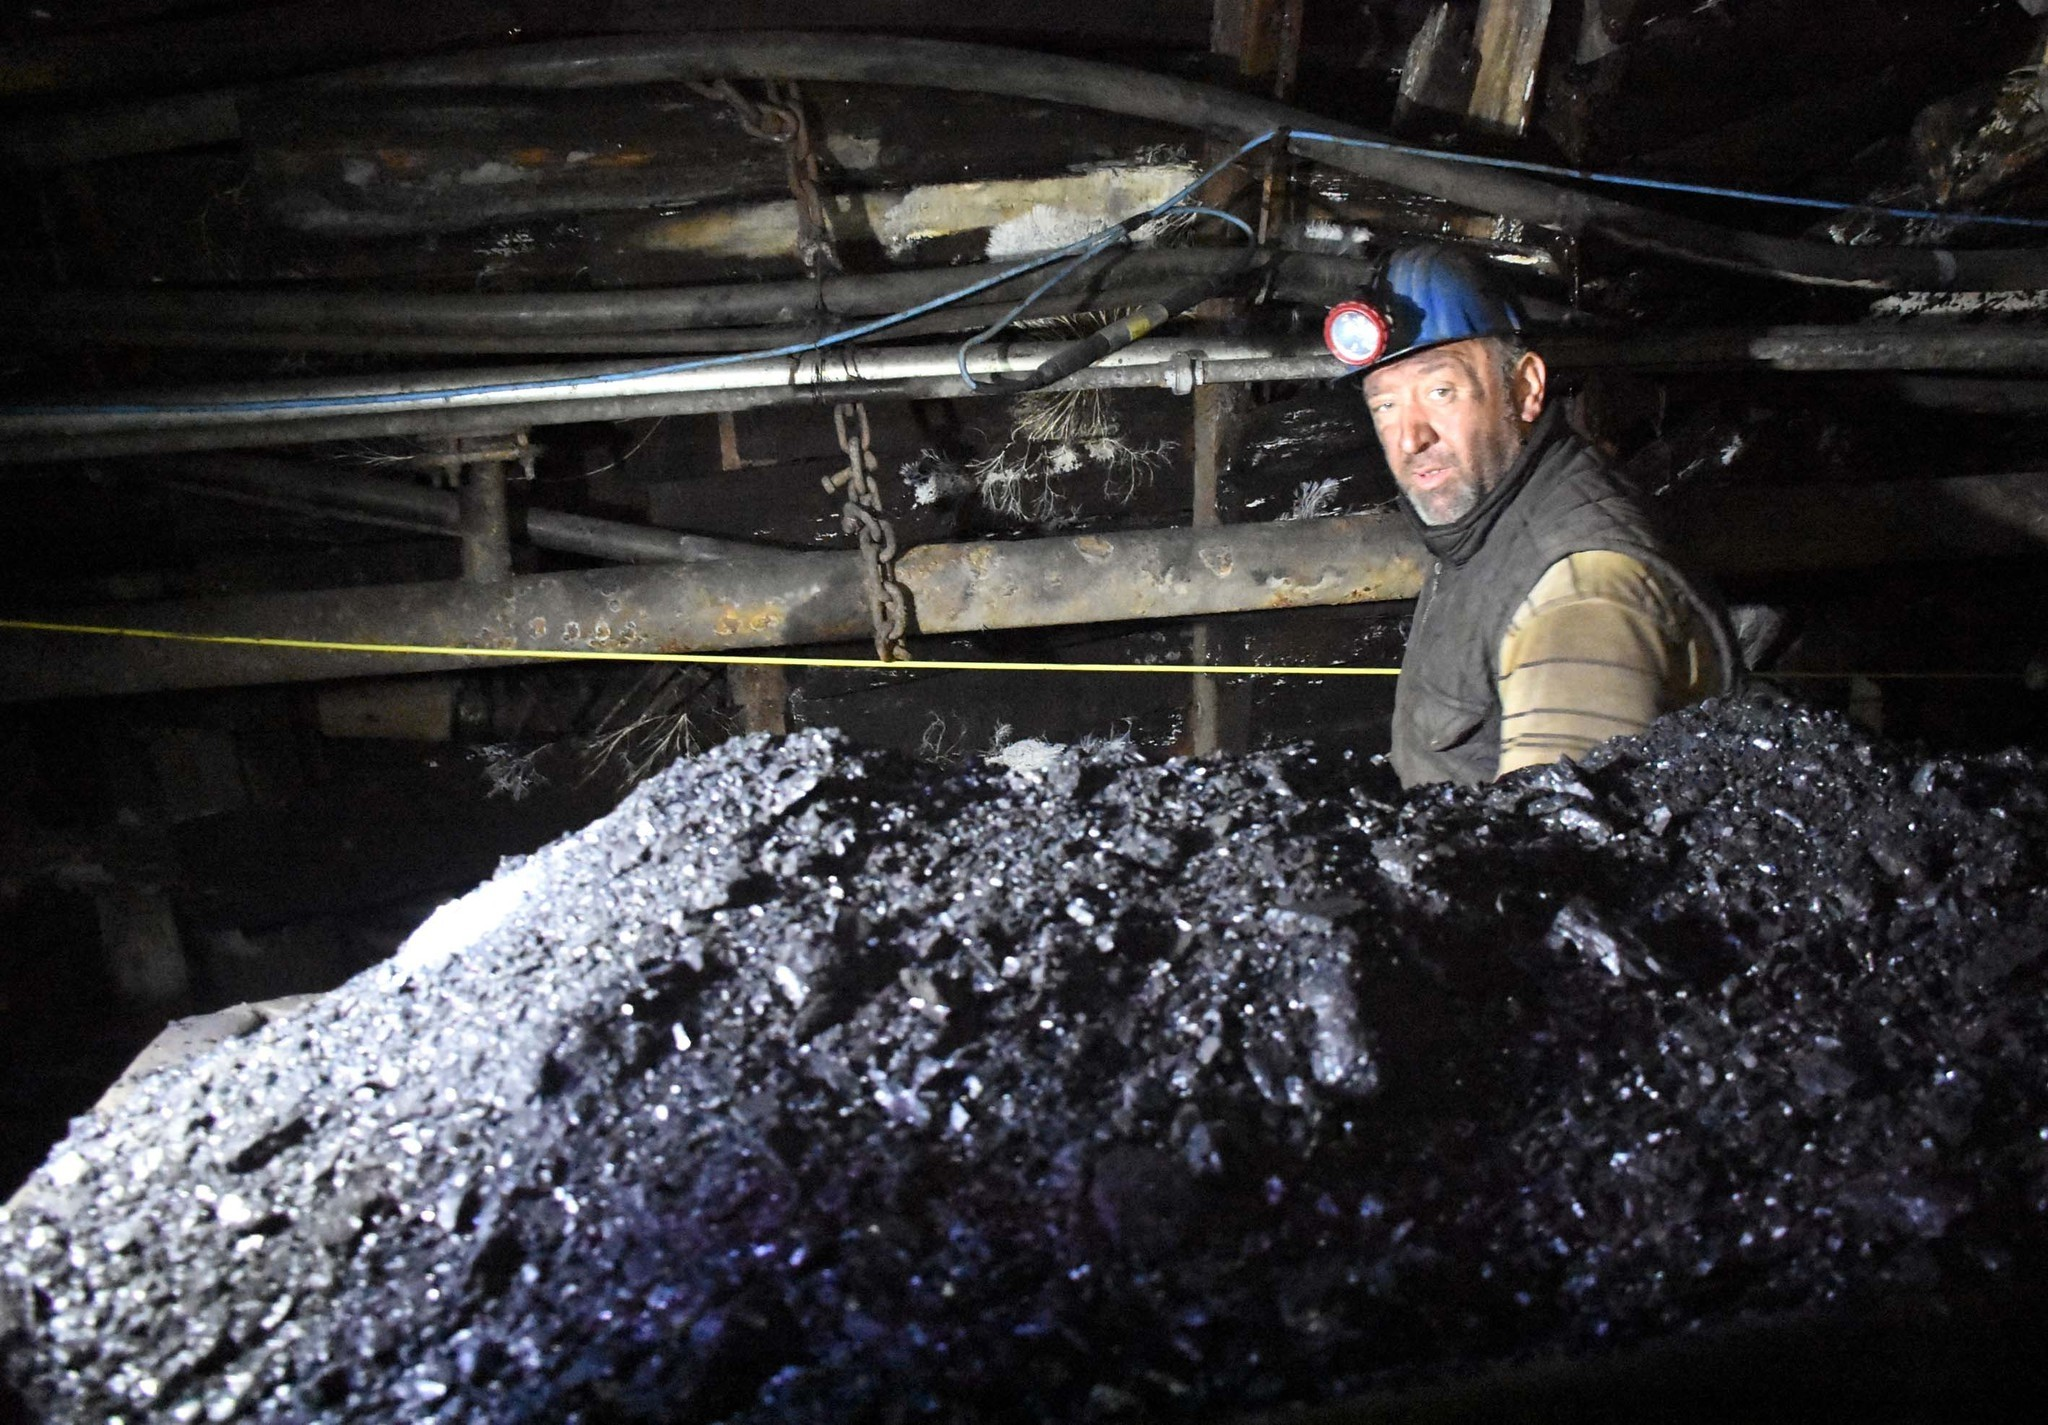 Miner Uu011fur Kandemirou011flu, 44, loads the mined coal into a cart for distribution. Kandemirou011flu, father of one, has been working in the coal mines of Zonguldak for the last 12 years.